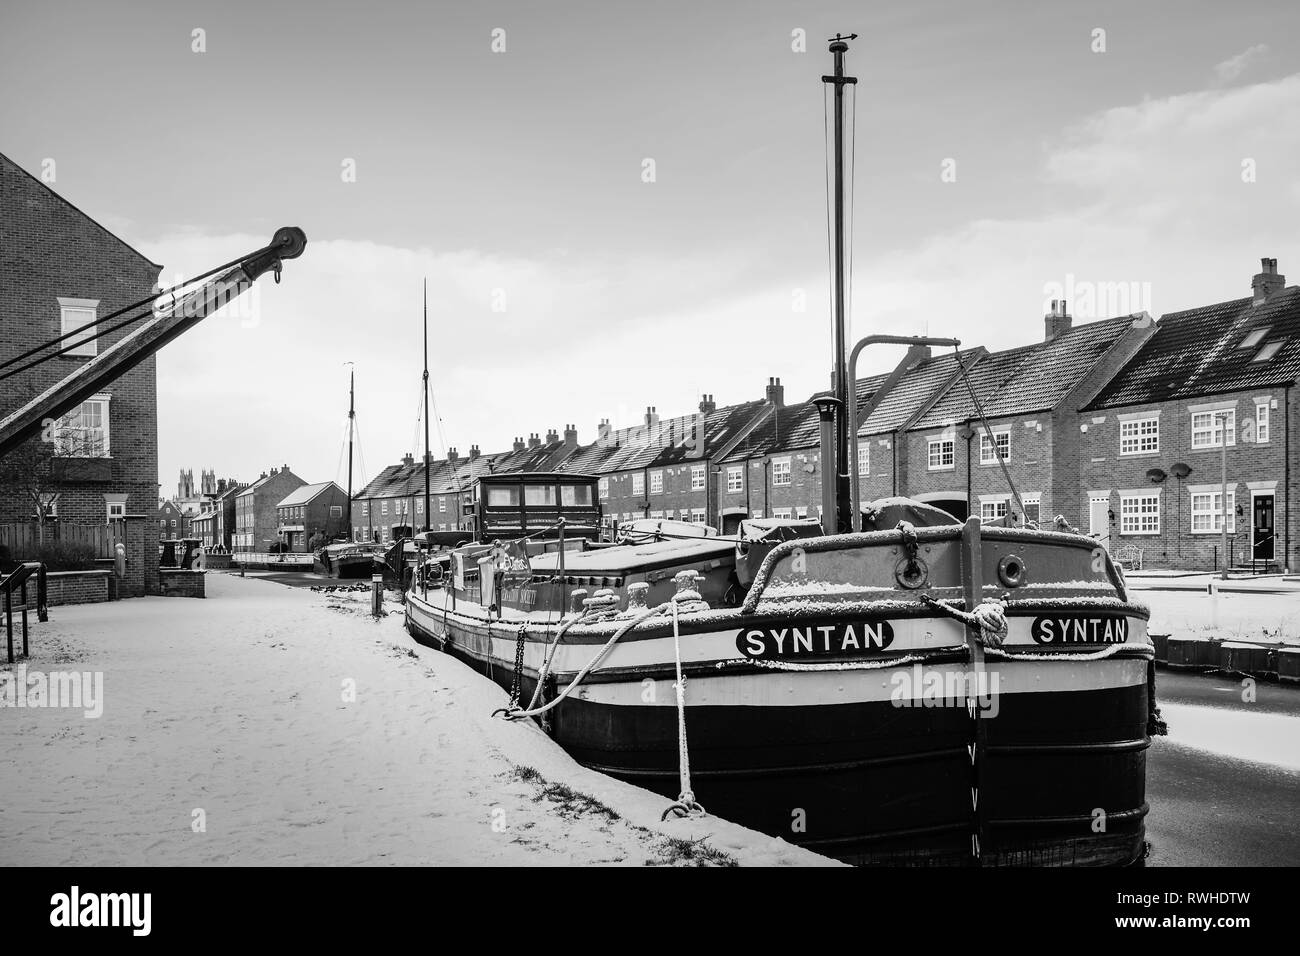 Vintage barges moored along the frozen beck (canal) and covered in snow flanked by town houses in Beverley, Yorkshire, UK. - Stock Image